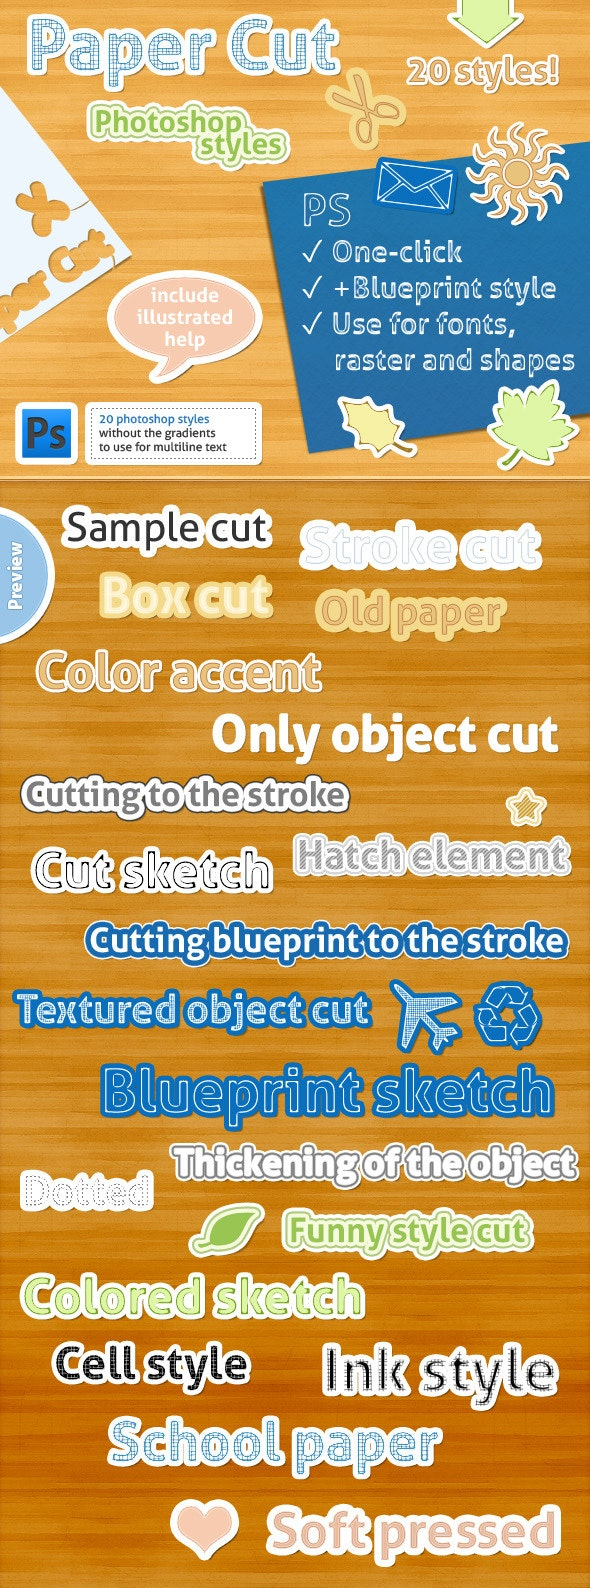 20 Photoshop Styles - Paper Cut - Text Effects Styles